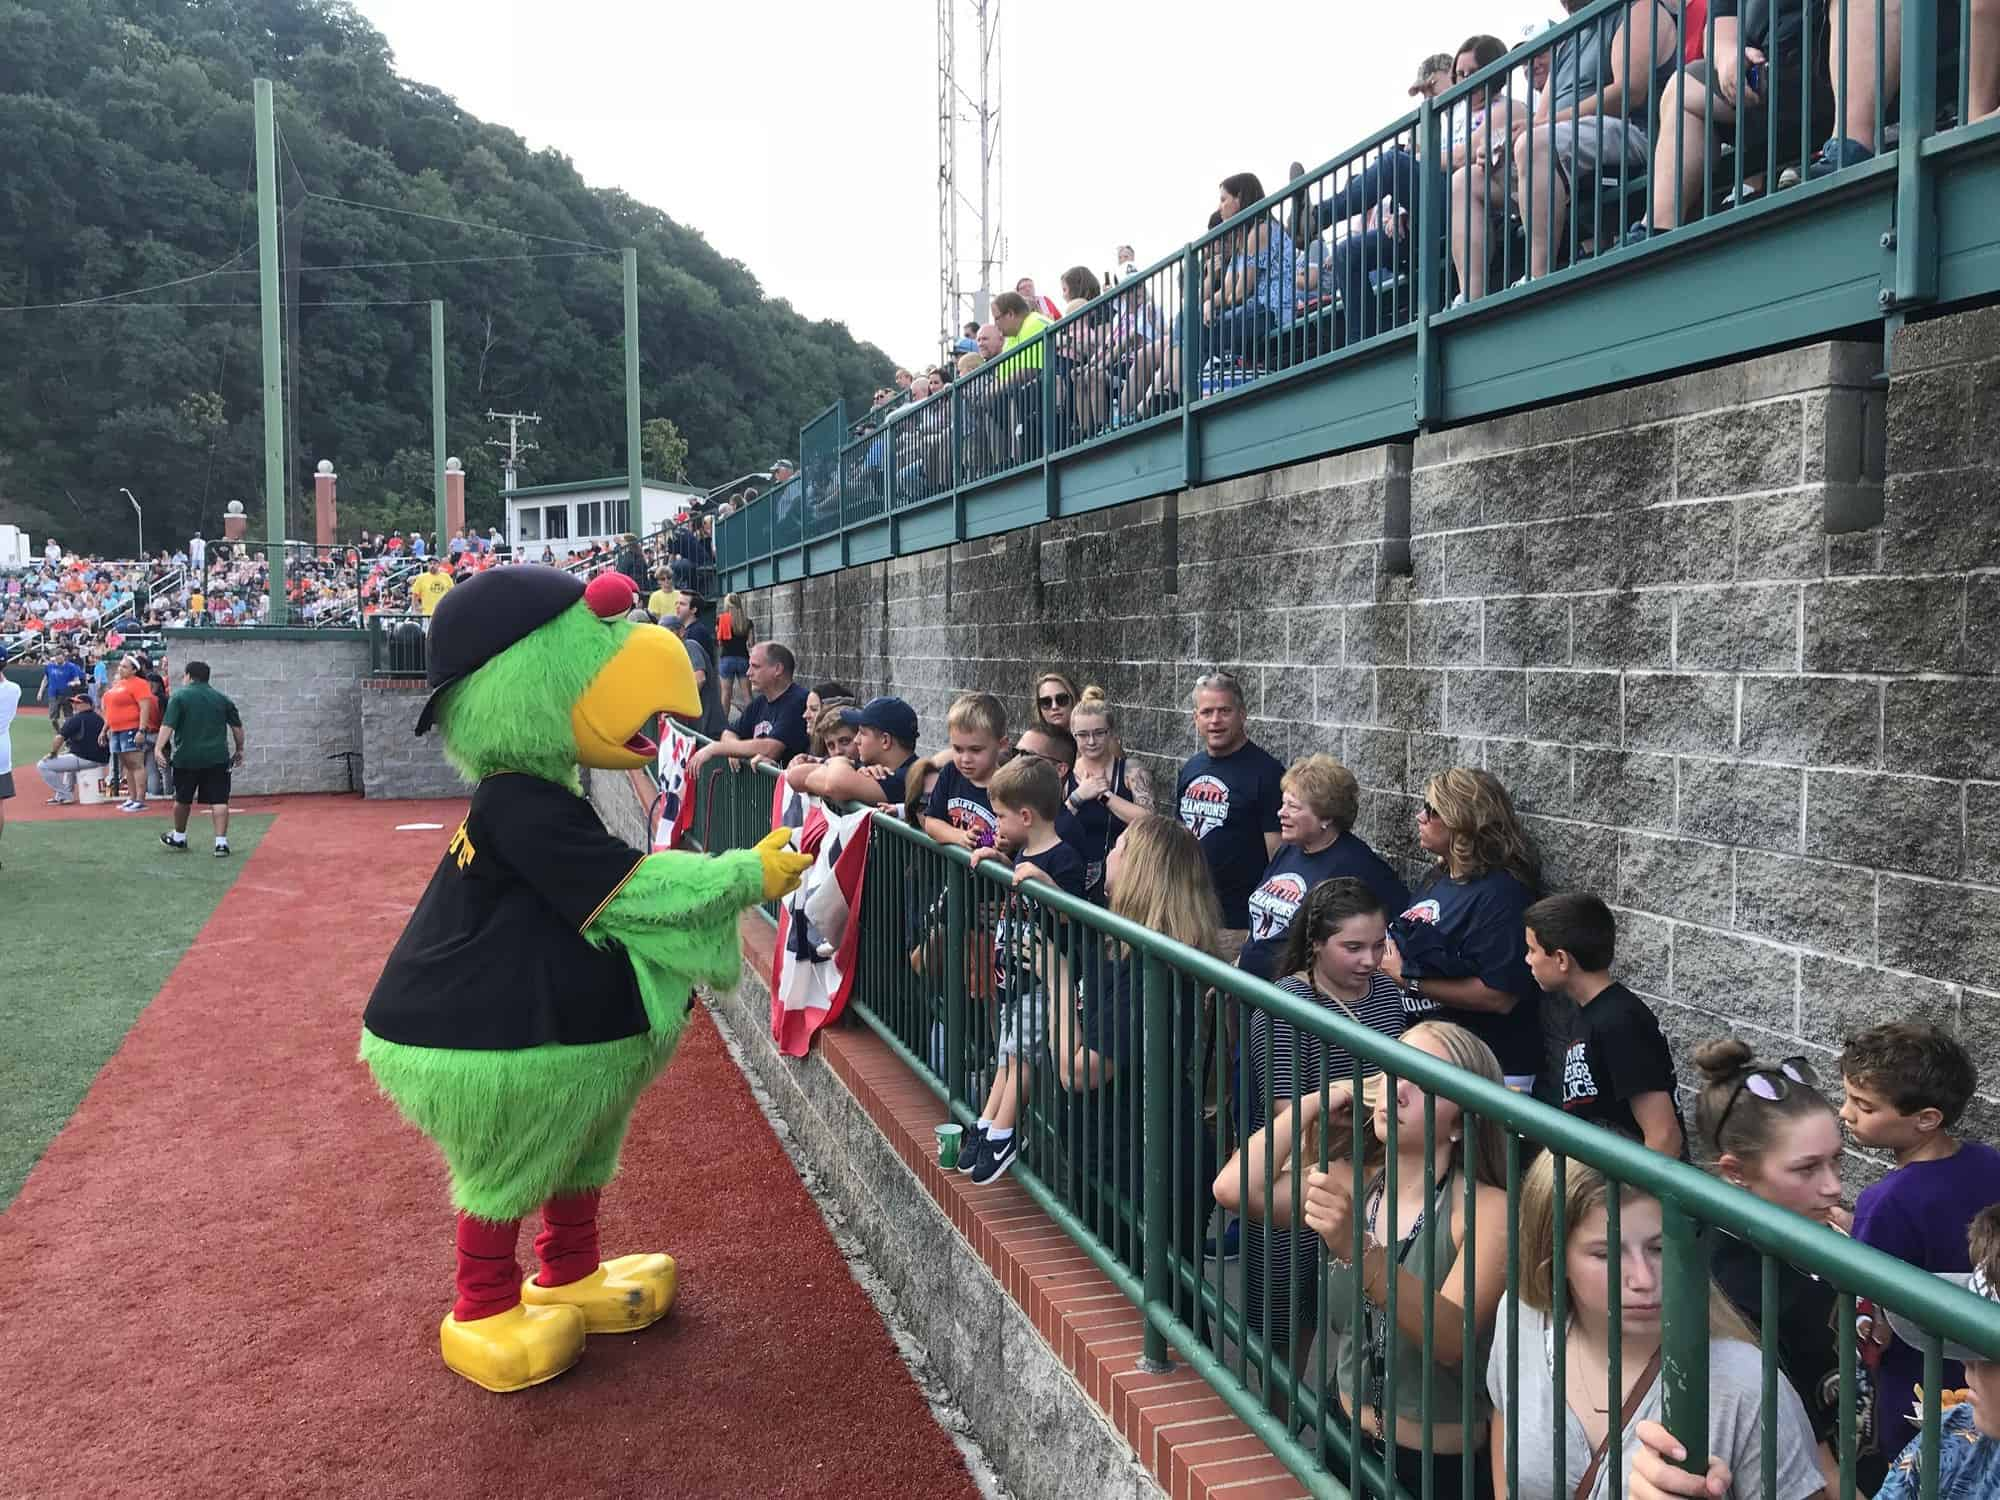 Pirates Parrot with fans